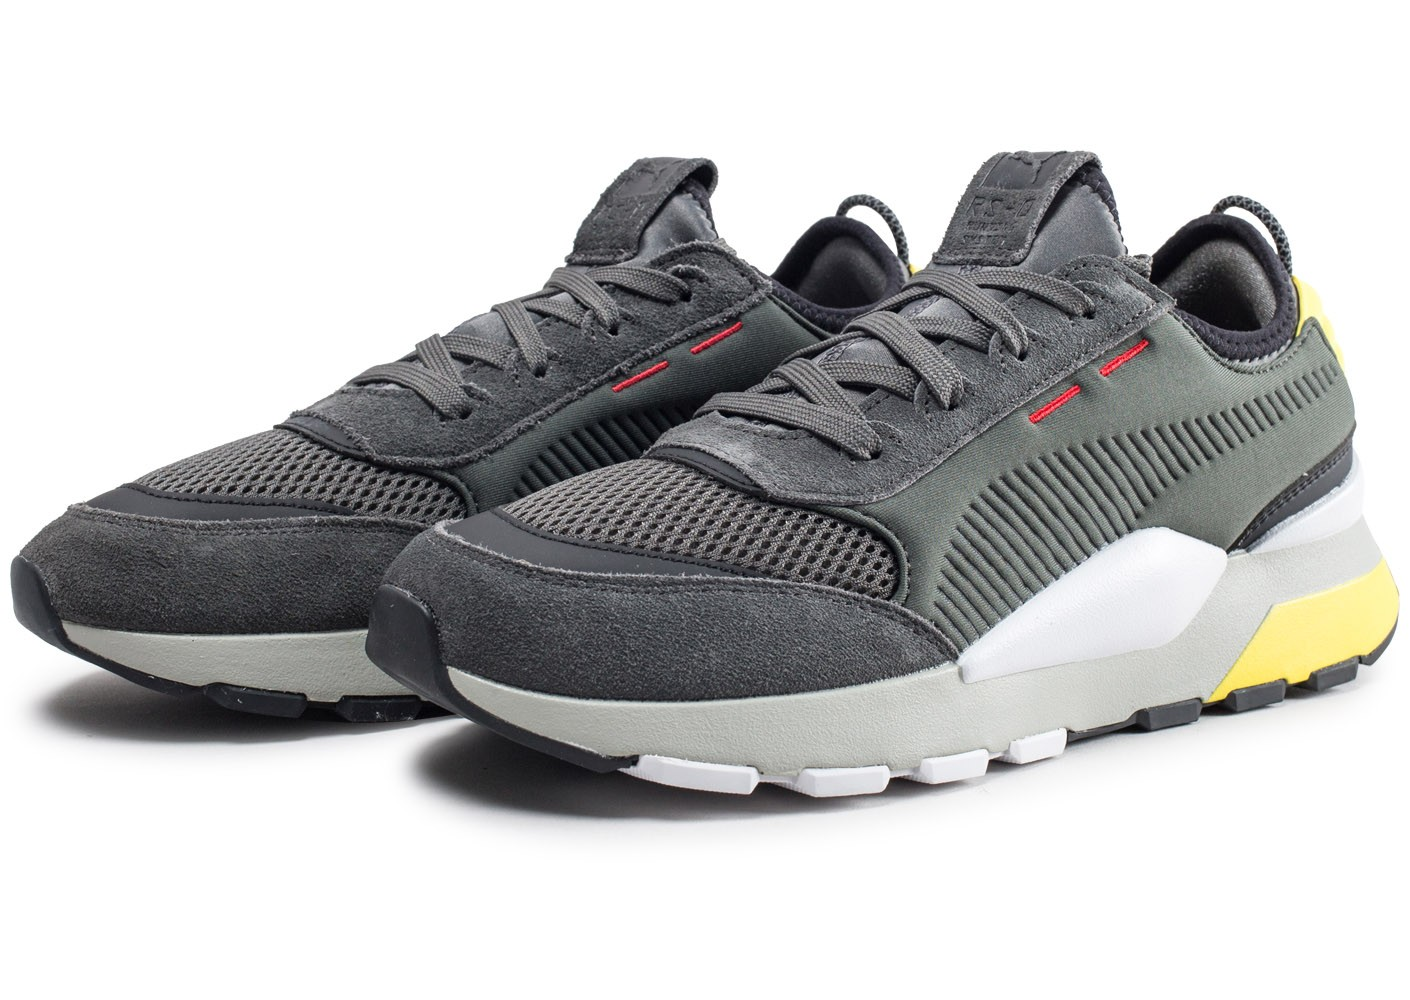 Puma RS 0 Winter INJ Toys Chaussures Baskets homme Chausport